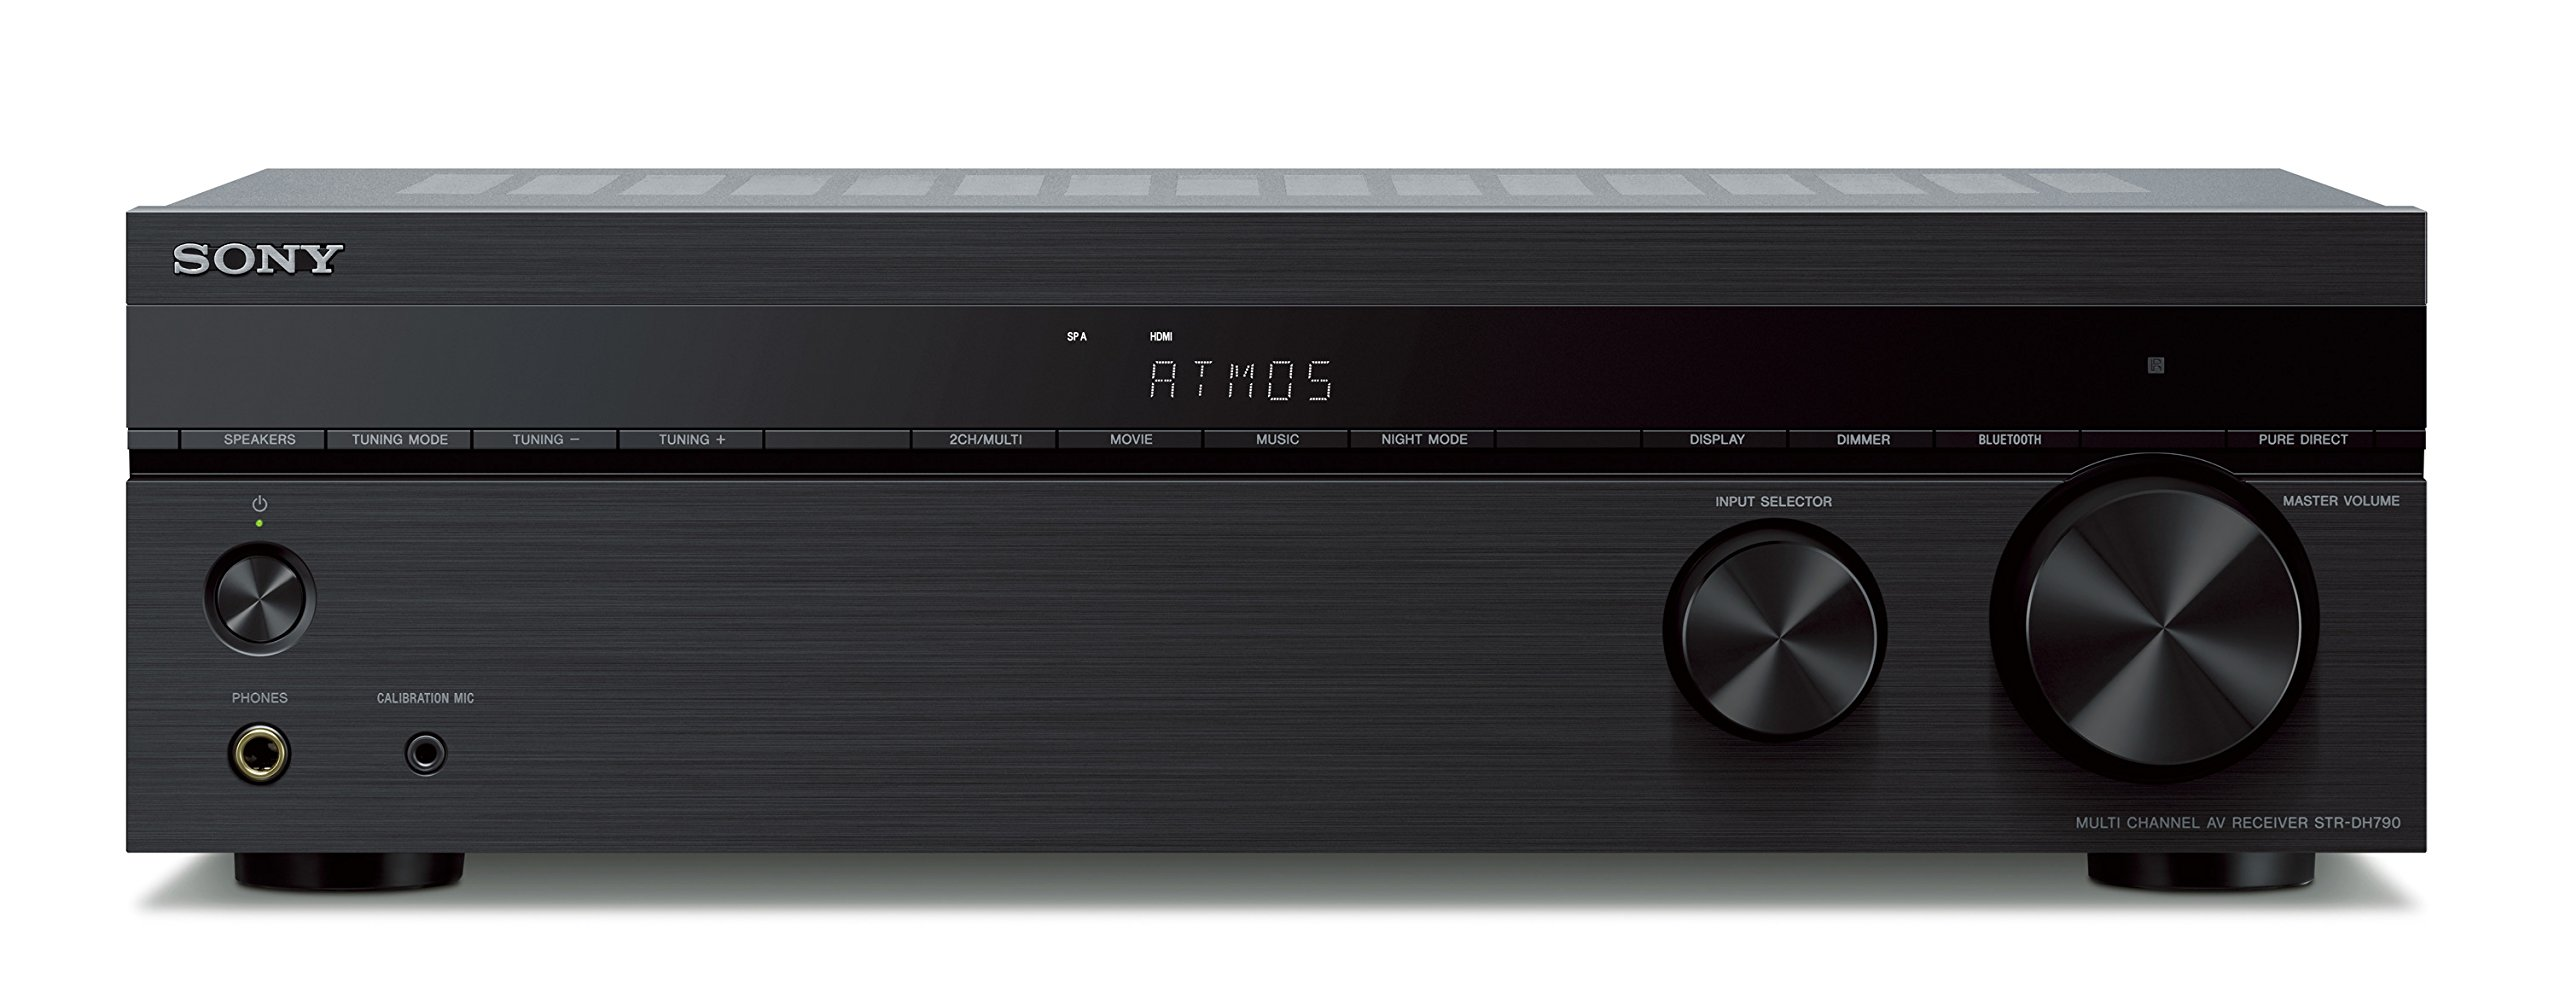 Sony STR-DH790 7.2-ch AV Receiver, 4K HDR, Dolby Vision, Dolby Atmos, dts:X, with Bluetooth 2